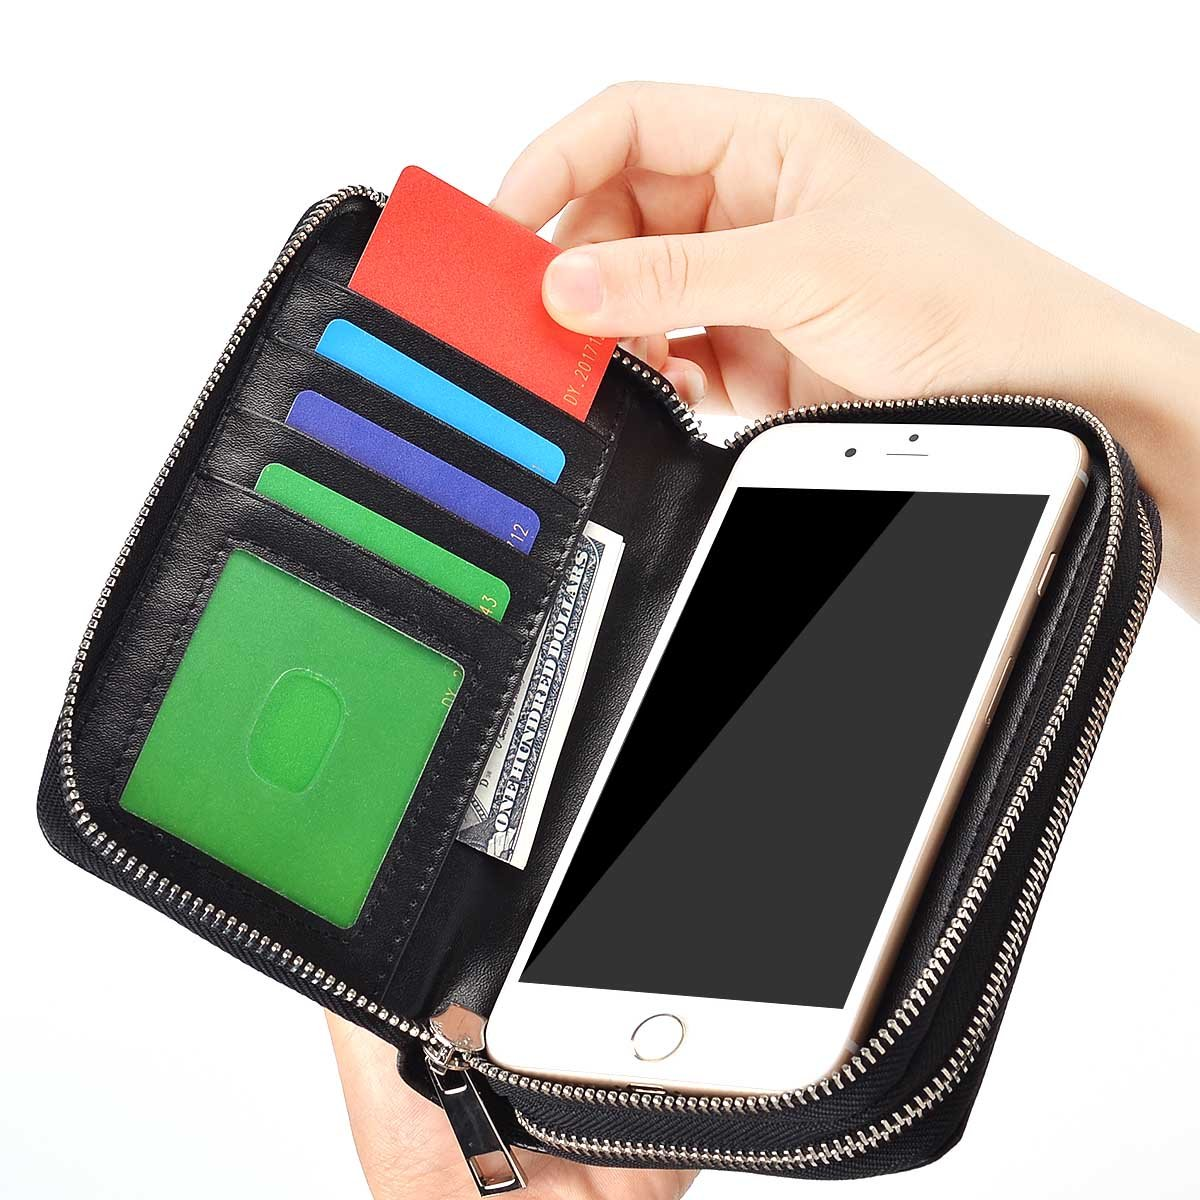 BANGBO Premium PU Leather Double Zipper Wallet Handbag Purse Card Case Money Organizer Phone Holder for Cell Phone IPhone 7/7 Plus/SE/6S/6 Plus/5S and Samsung Galaxy S8/8 Plus/S7/S6, Green 4326891289